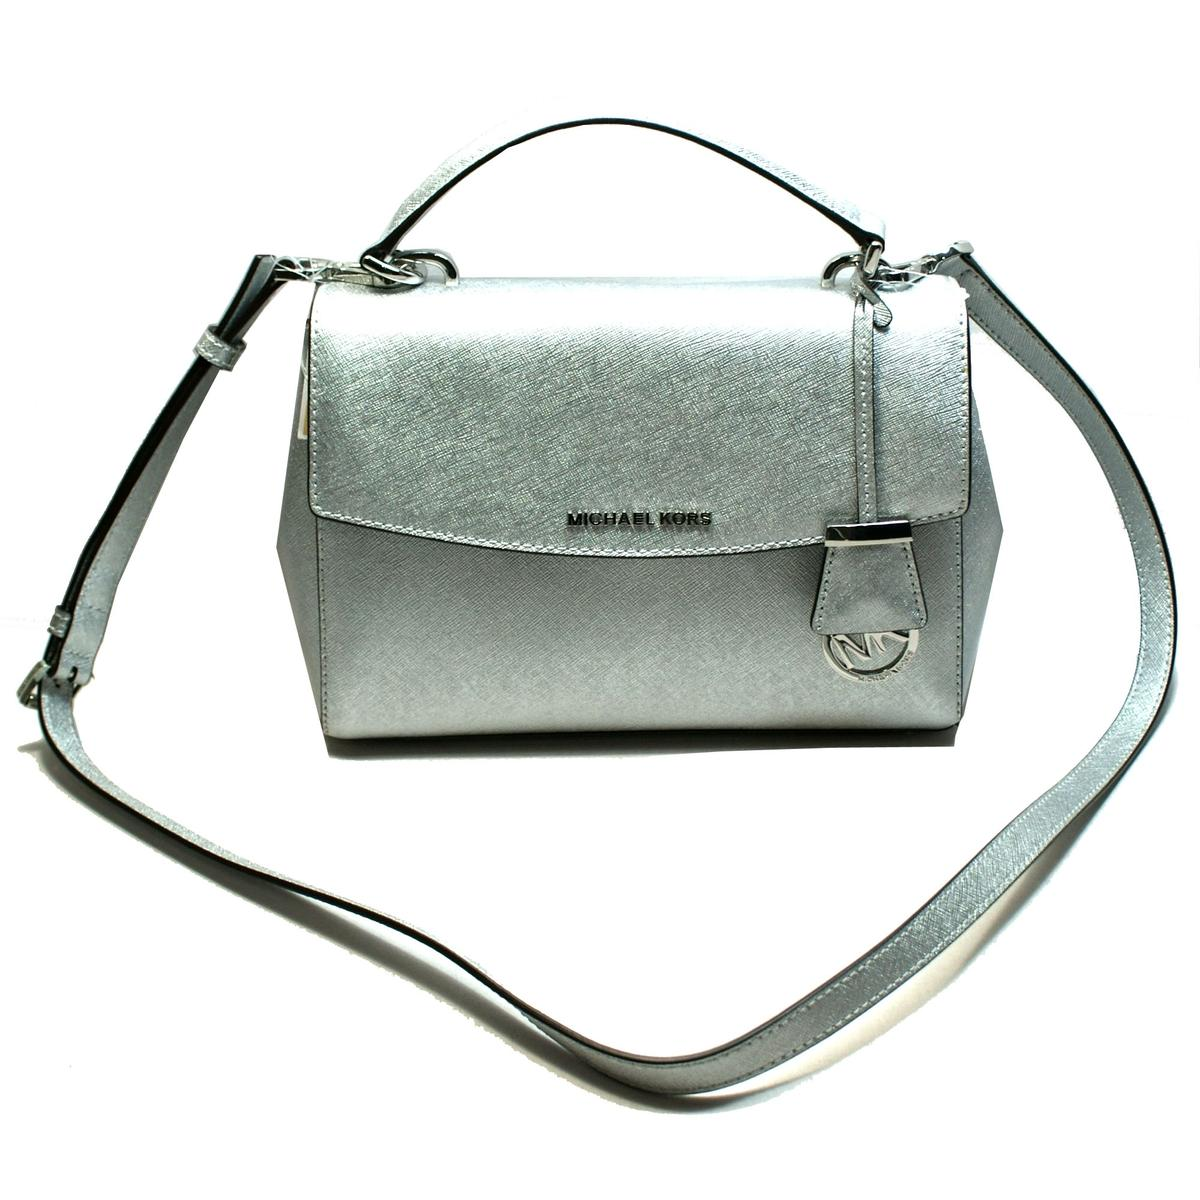 f38919604305b3 Home · Michael Kors · Ava Small Satchel Leather Crossbody Bag Silver. CLICK  THUMBNAIL TO ZOOM. Found ...